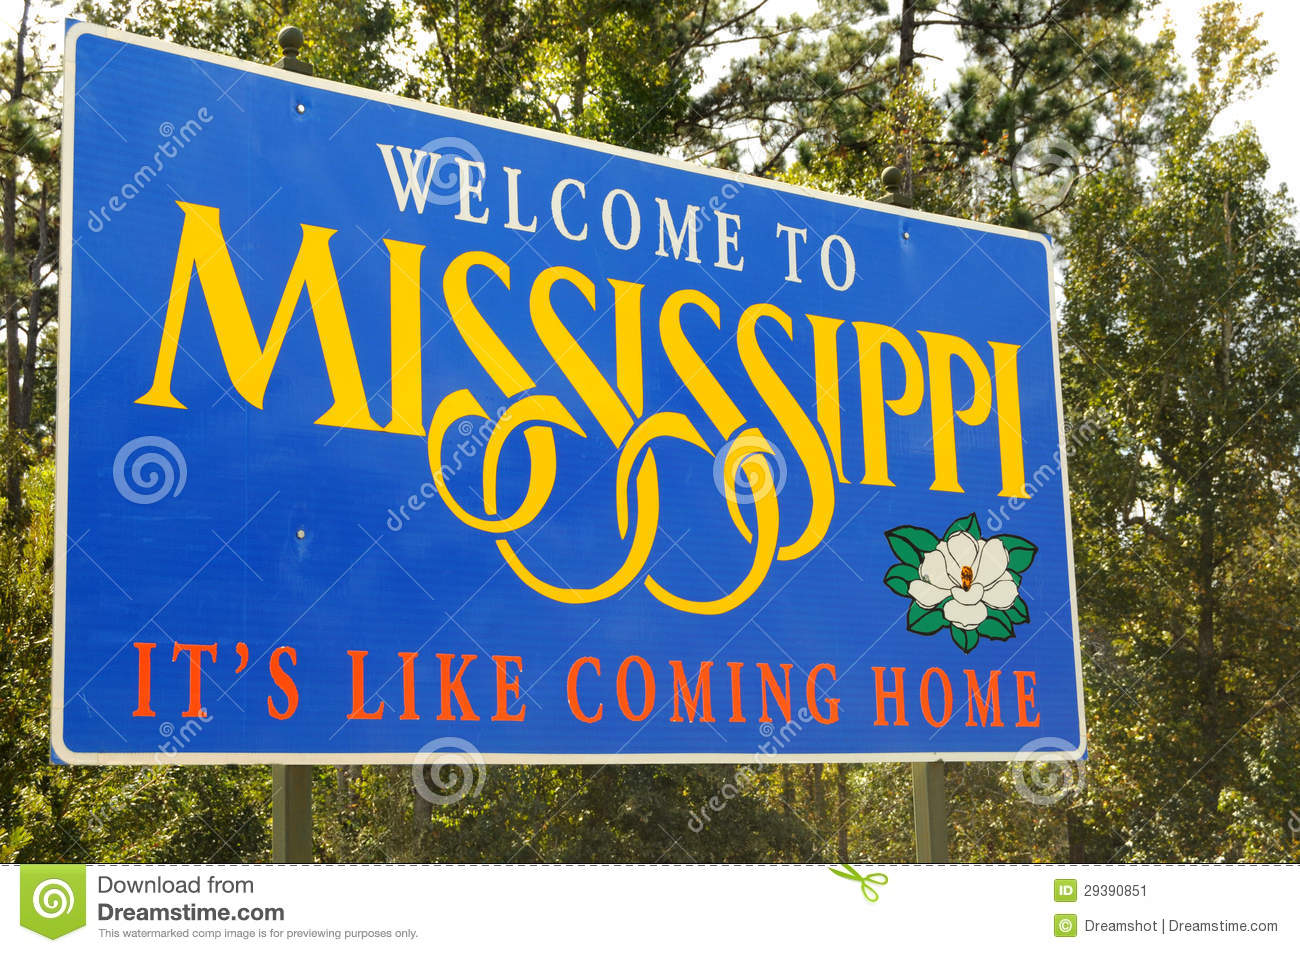 Welcome To Mississippi Stock Image - Image: 29390851